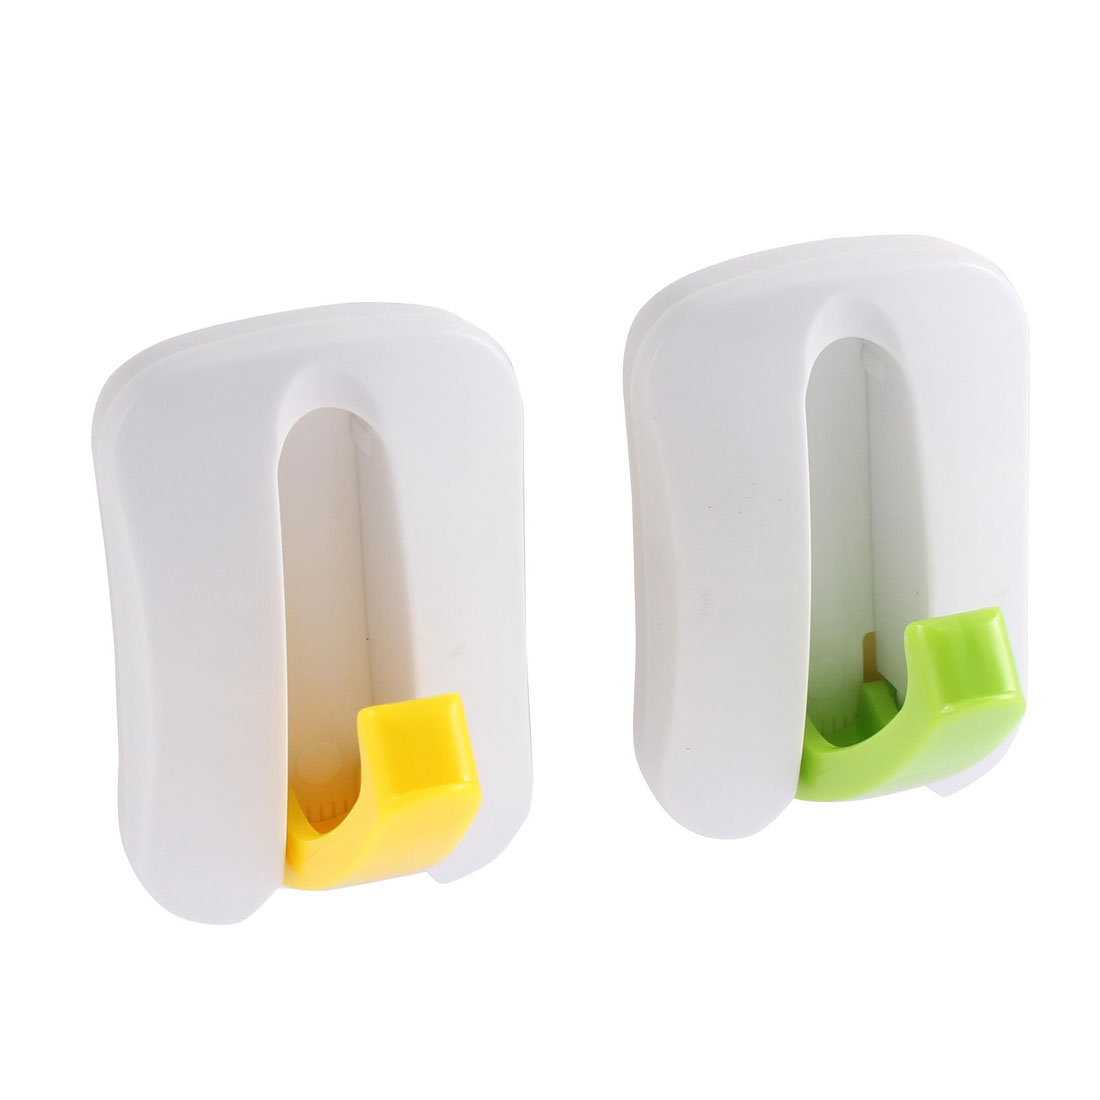 Home Kitchen Plastic Wall Door Hidden Adhesive Sticky Hook Hanger Holder 2pcs